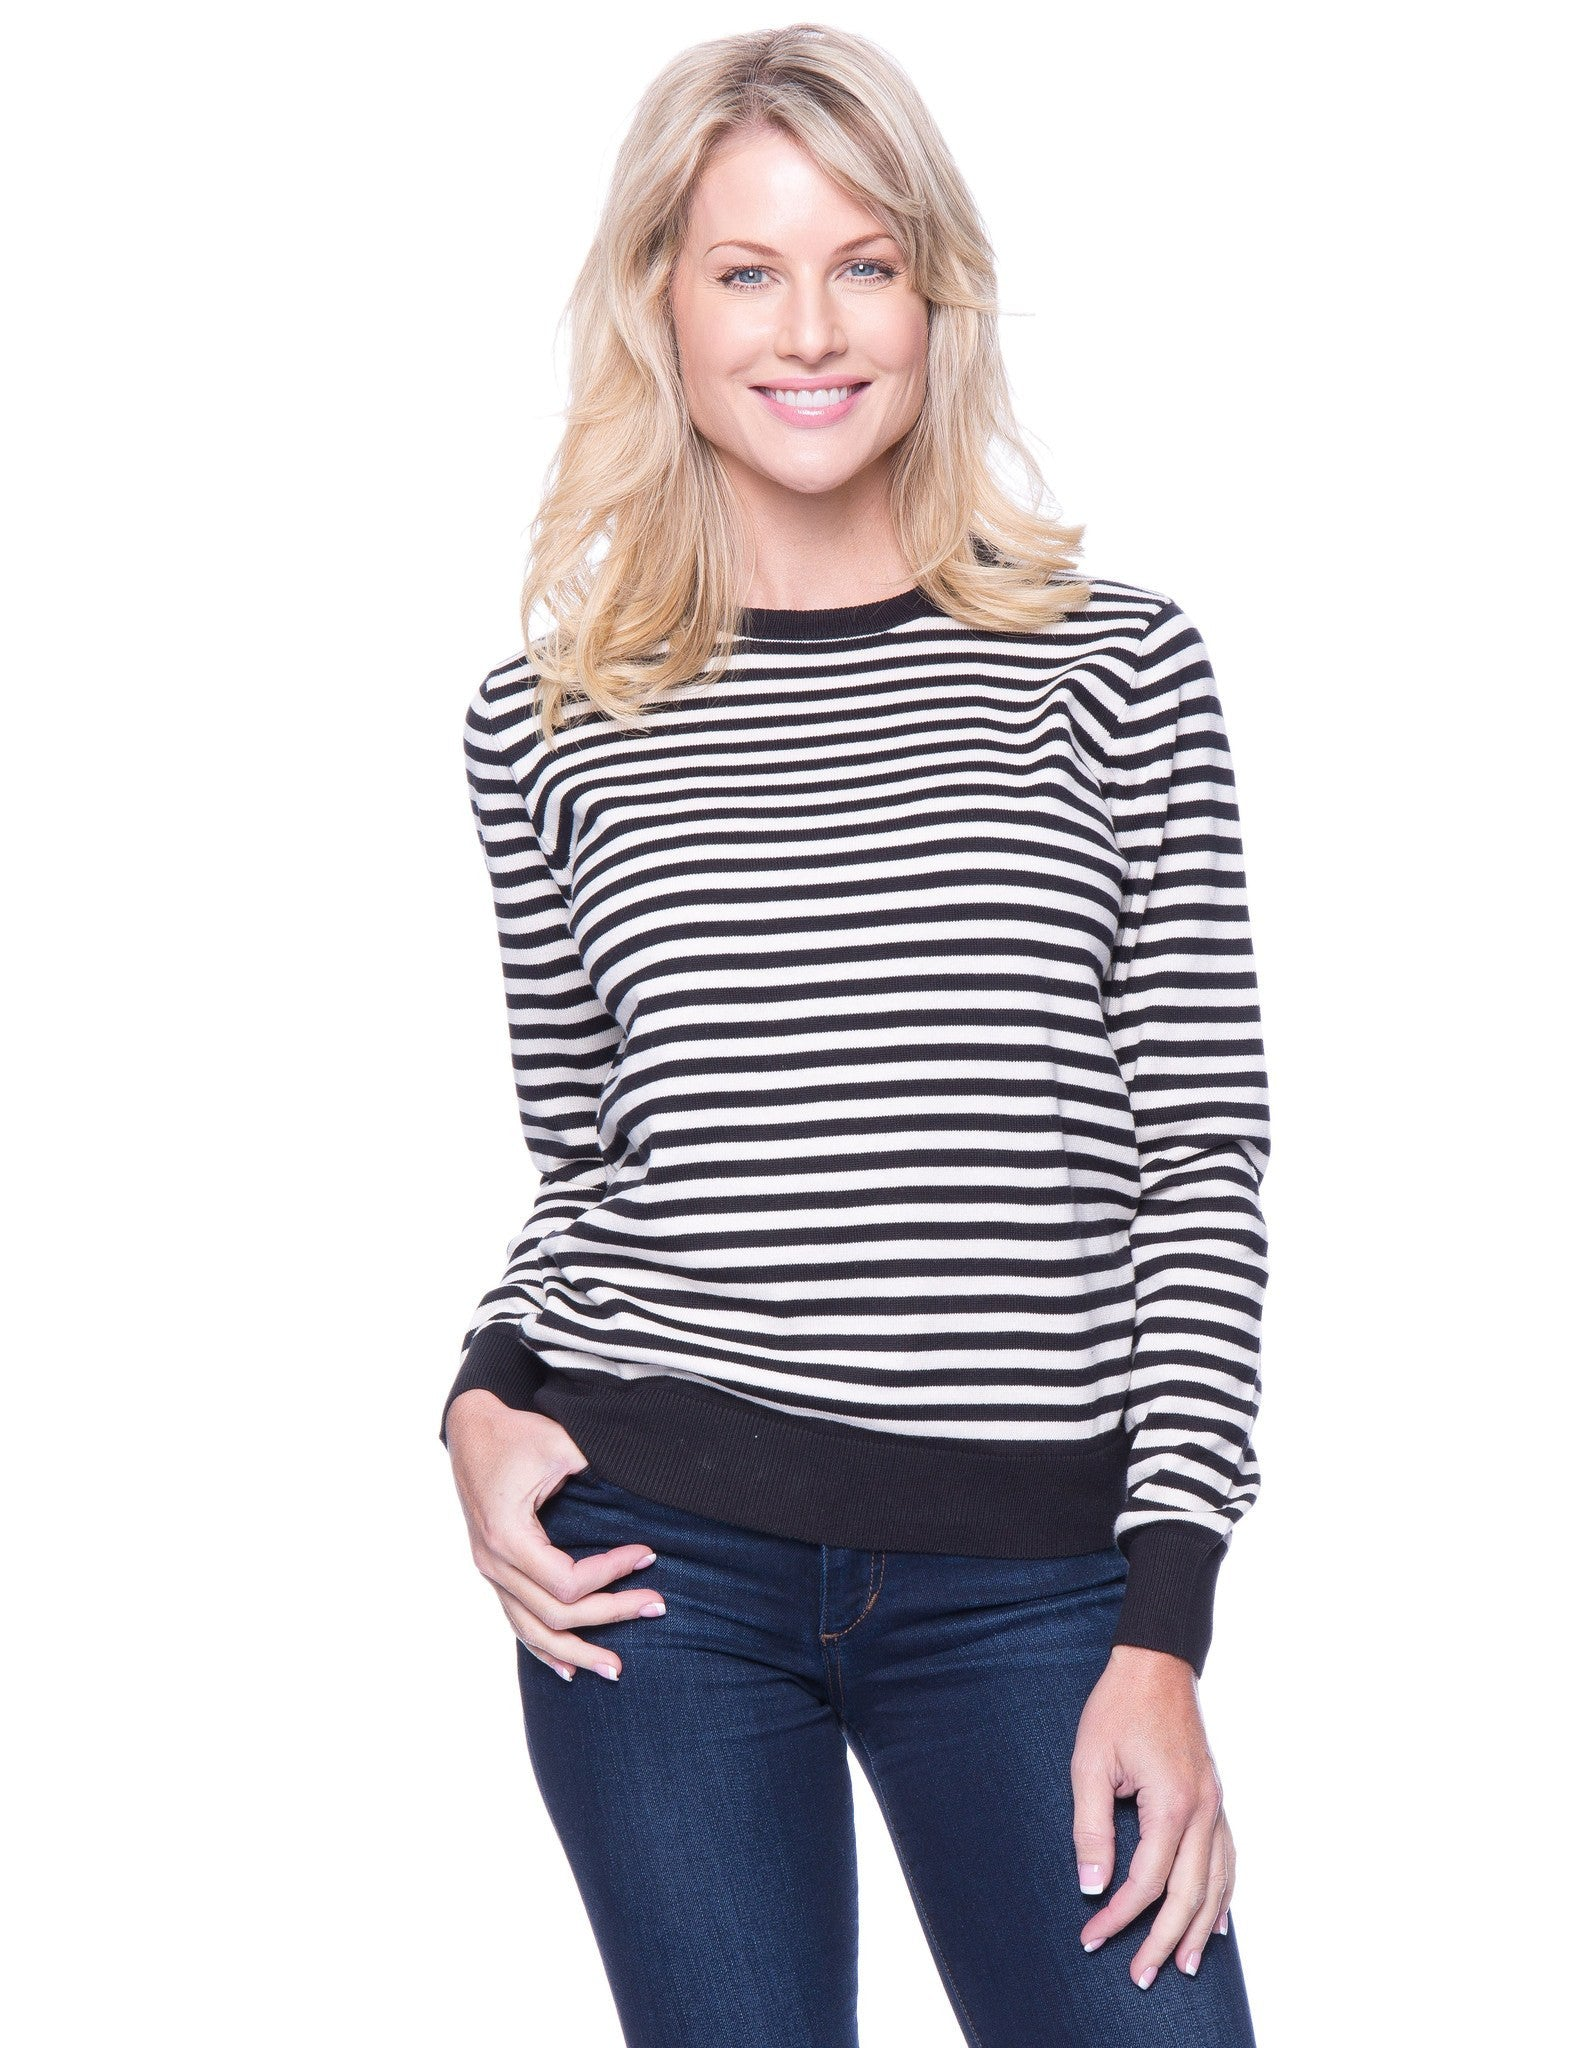 Premium Cotton Crew Neck Sweater - Stripes Black/Ivory